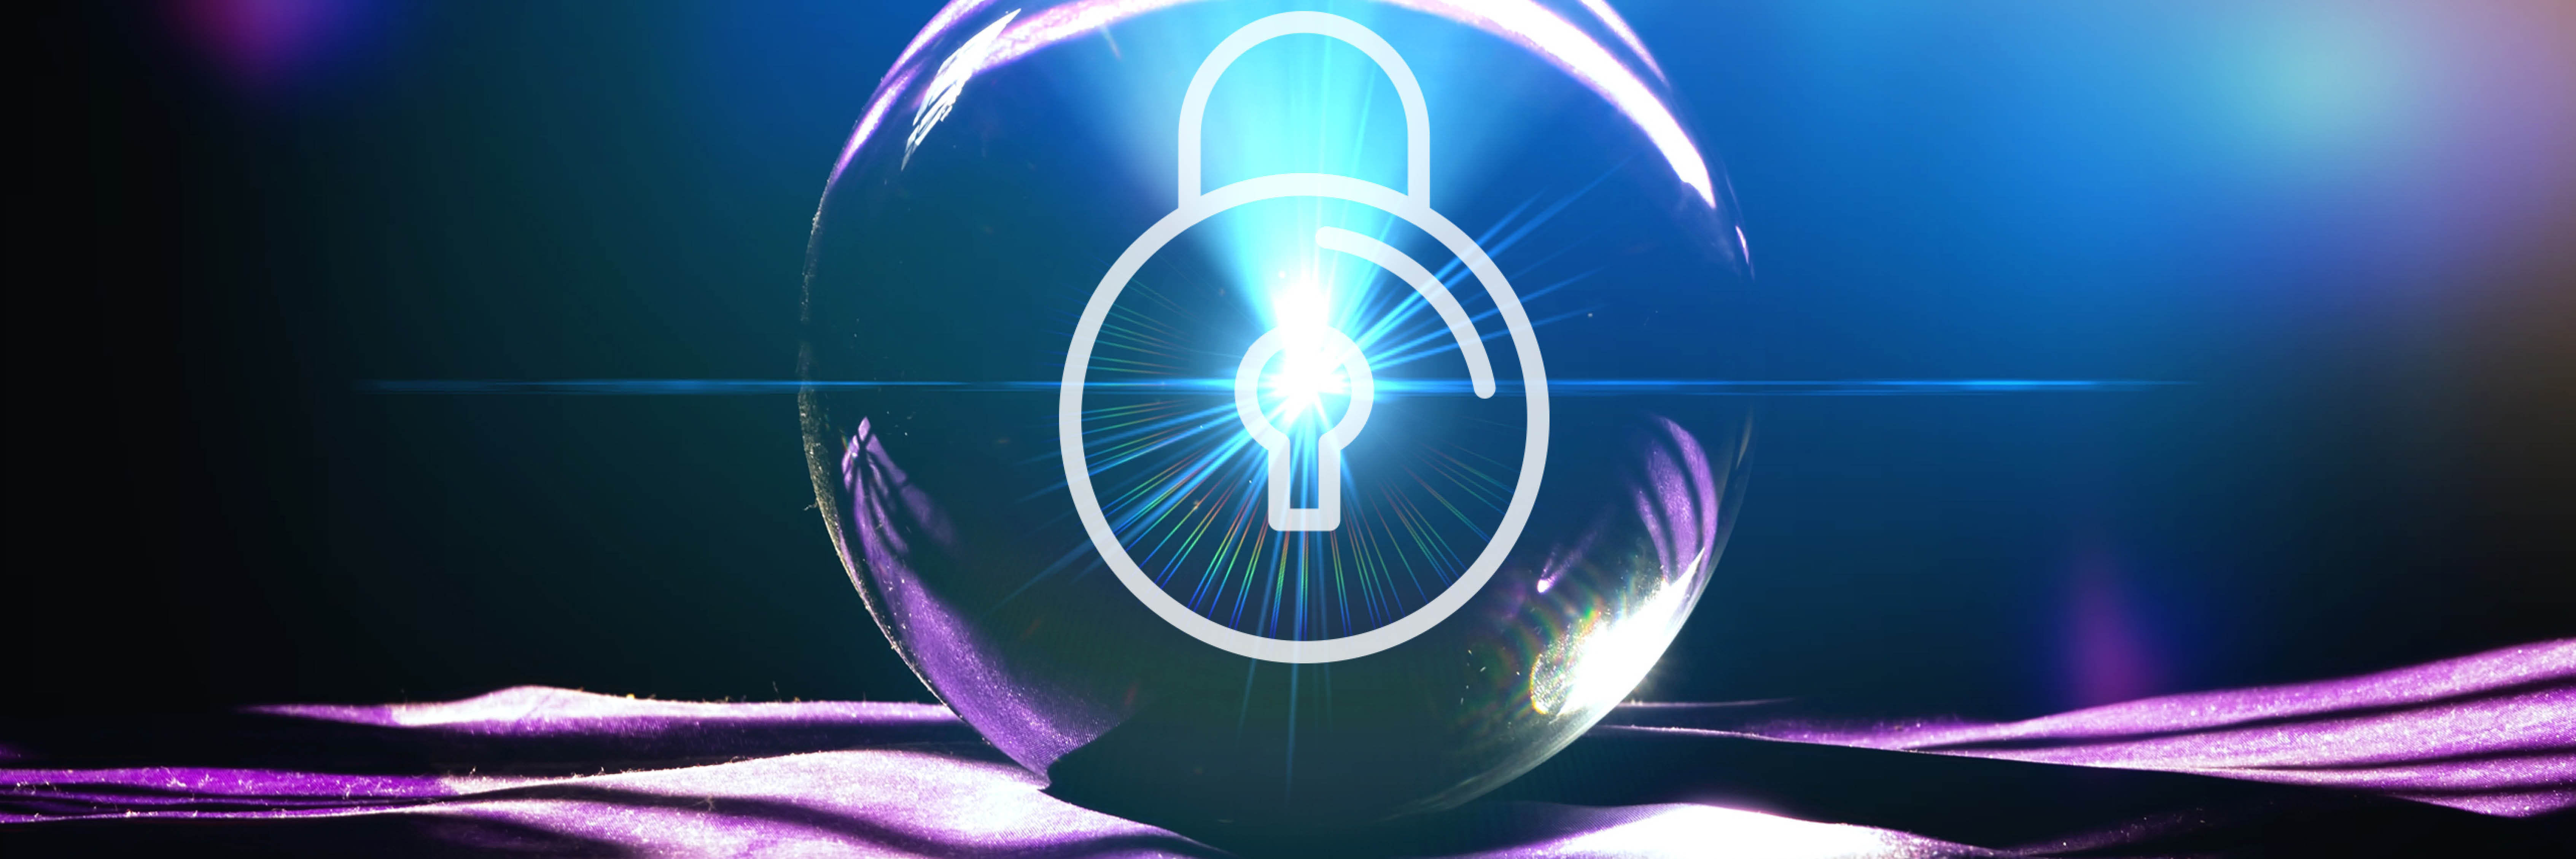 Safe-T's Top 6 Cybersecurity Predictions for 2018